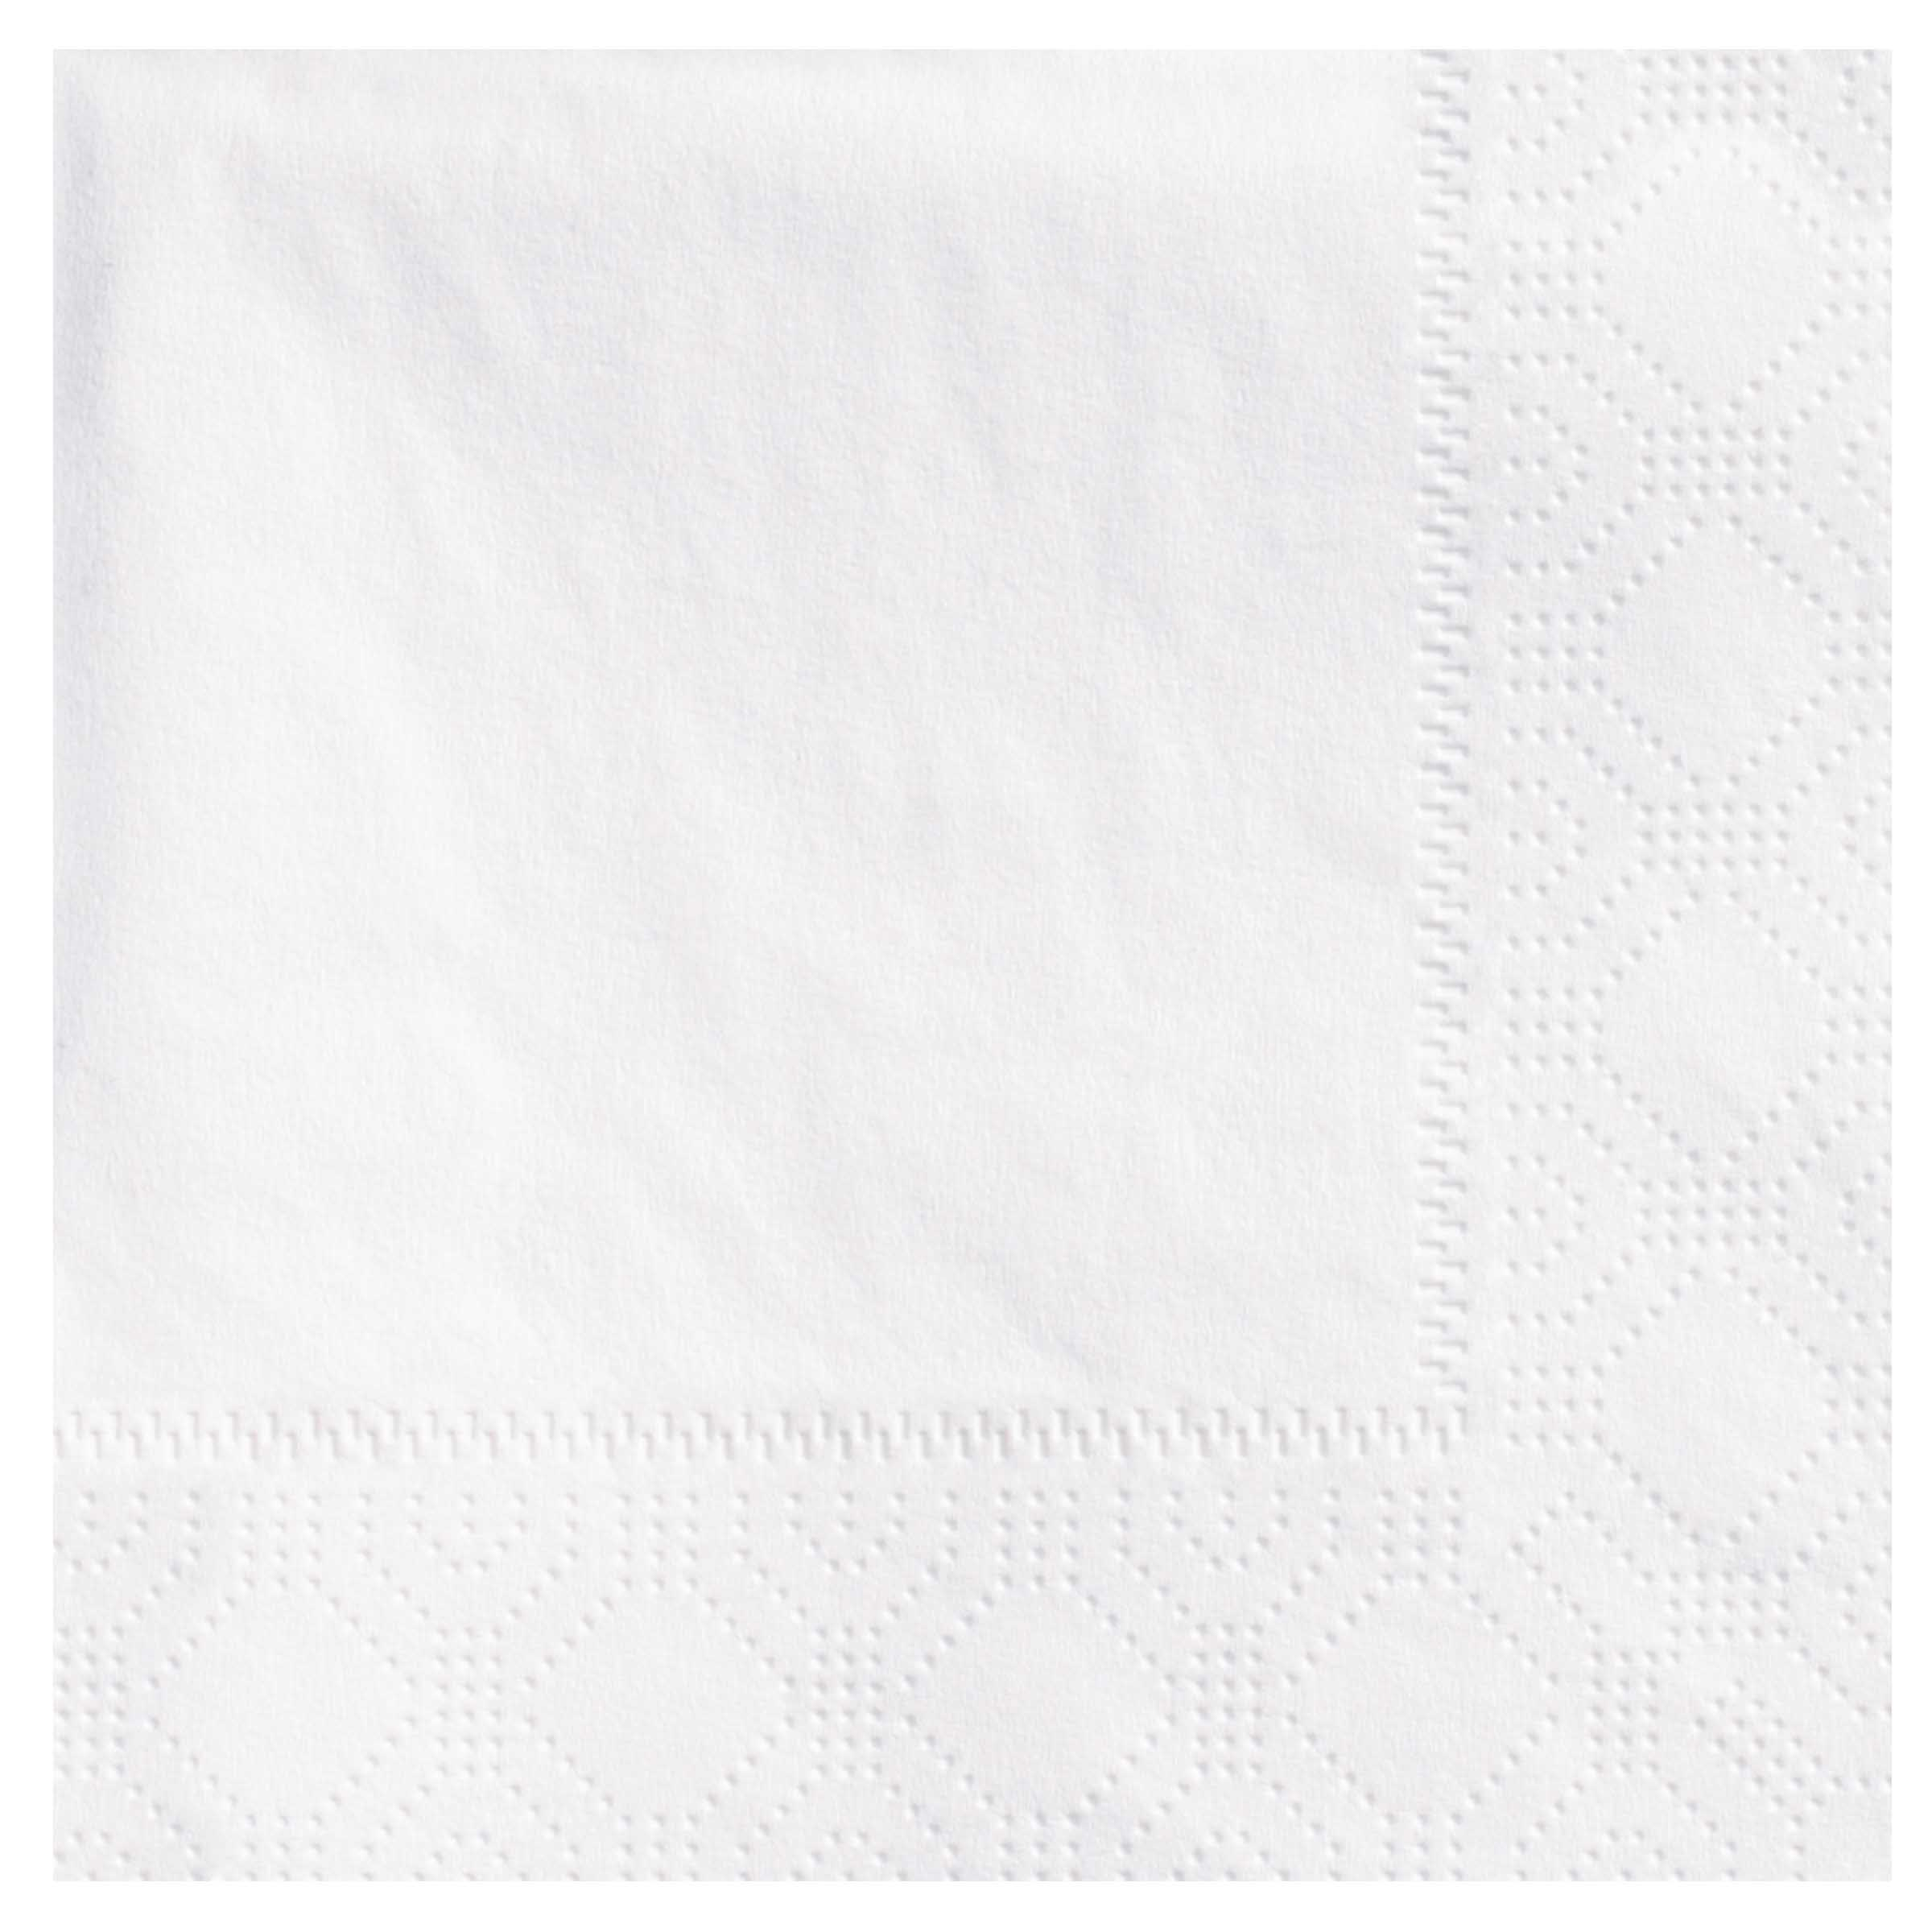 "Hoffmaster White Oak Leaf Embossed 10""x10"" 2ply   1/4 Fold Beverage Napkin 180330"